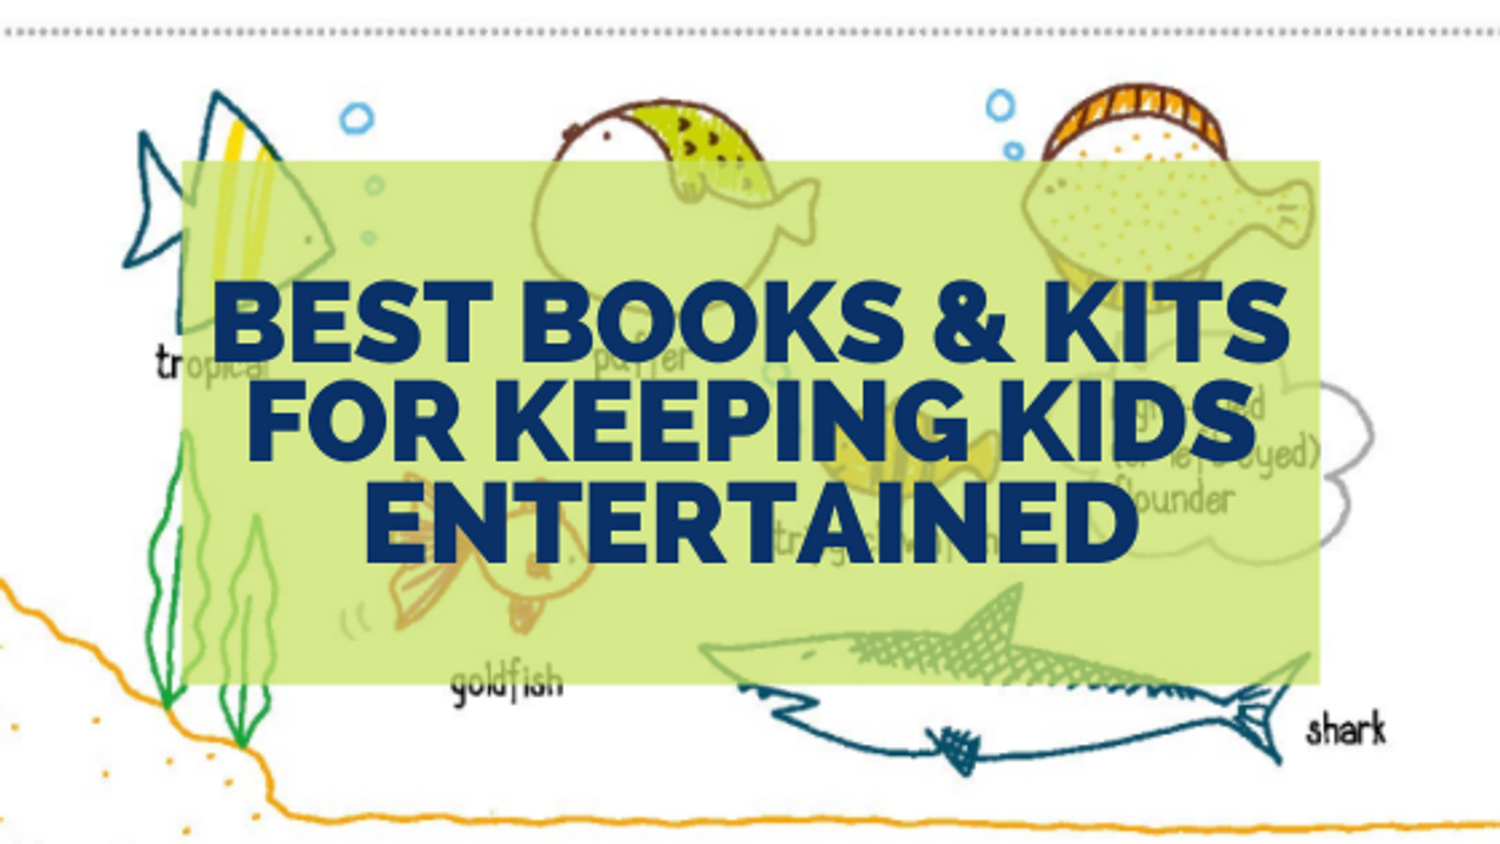 The Best Books & Kits for Keeping Kids Entertained